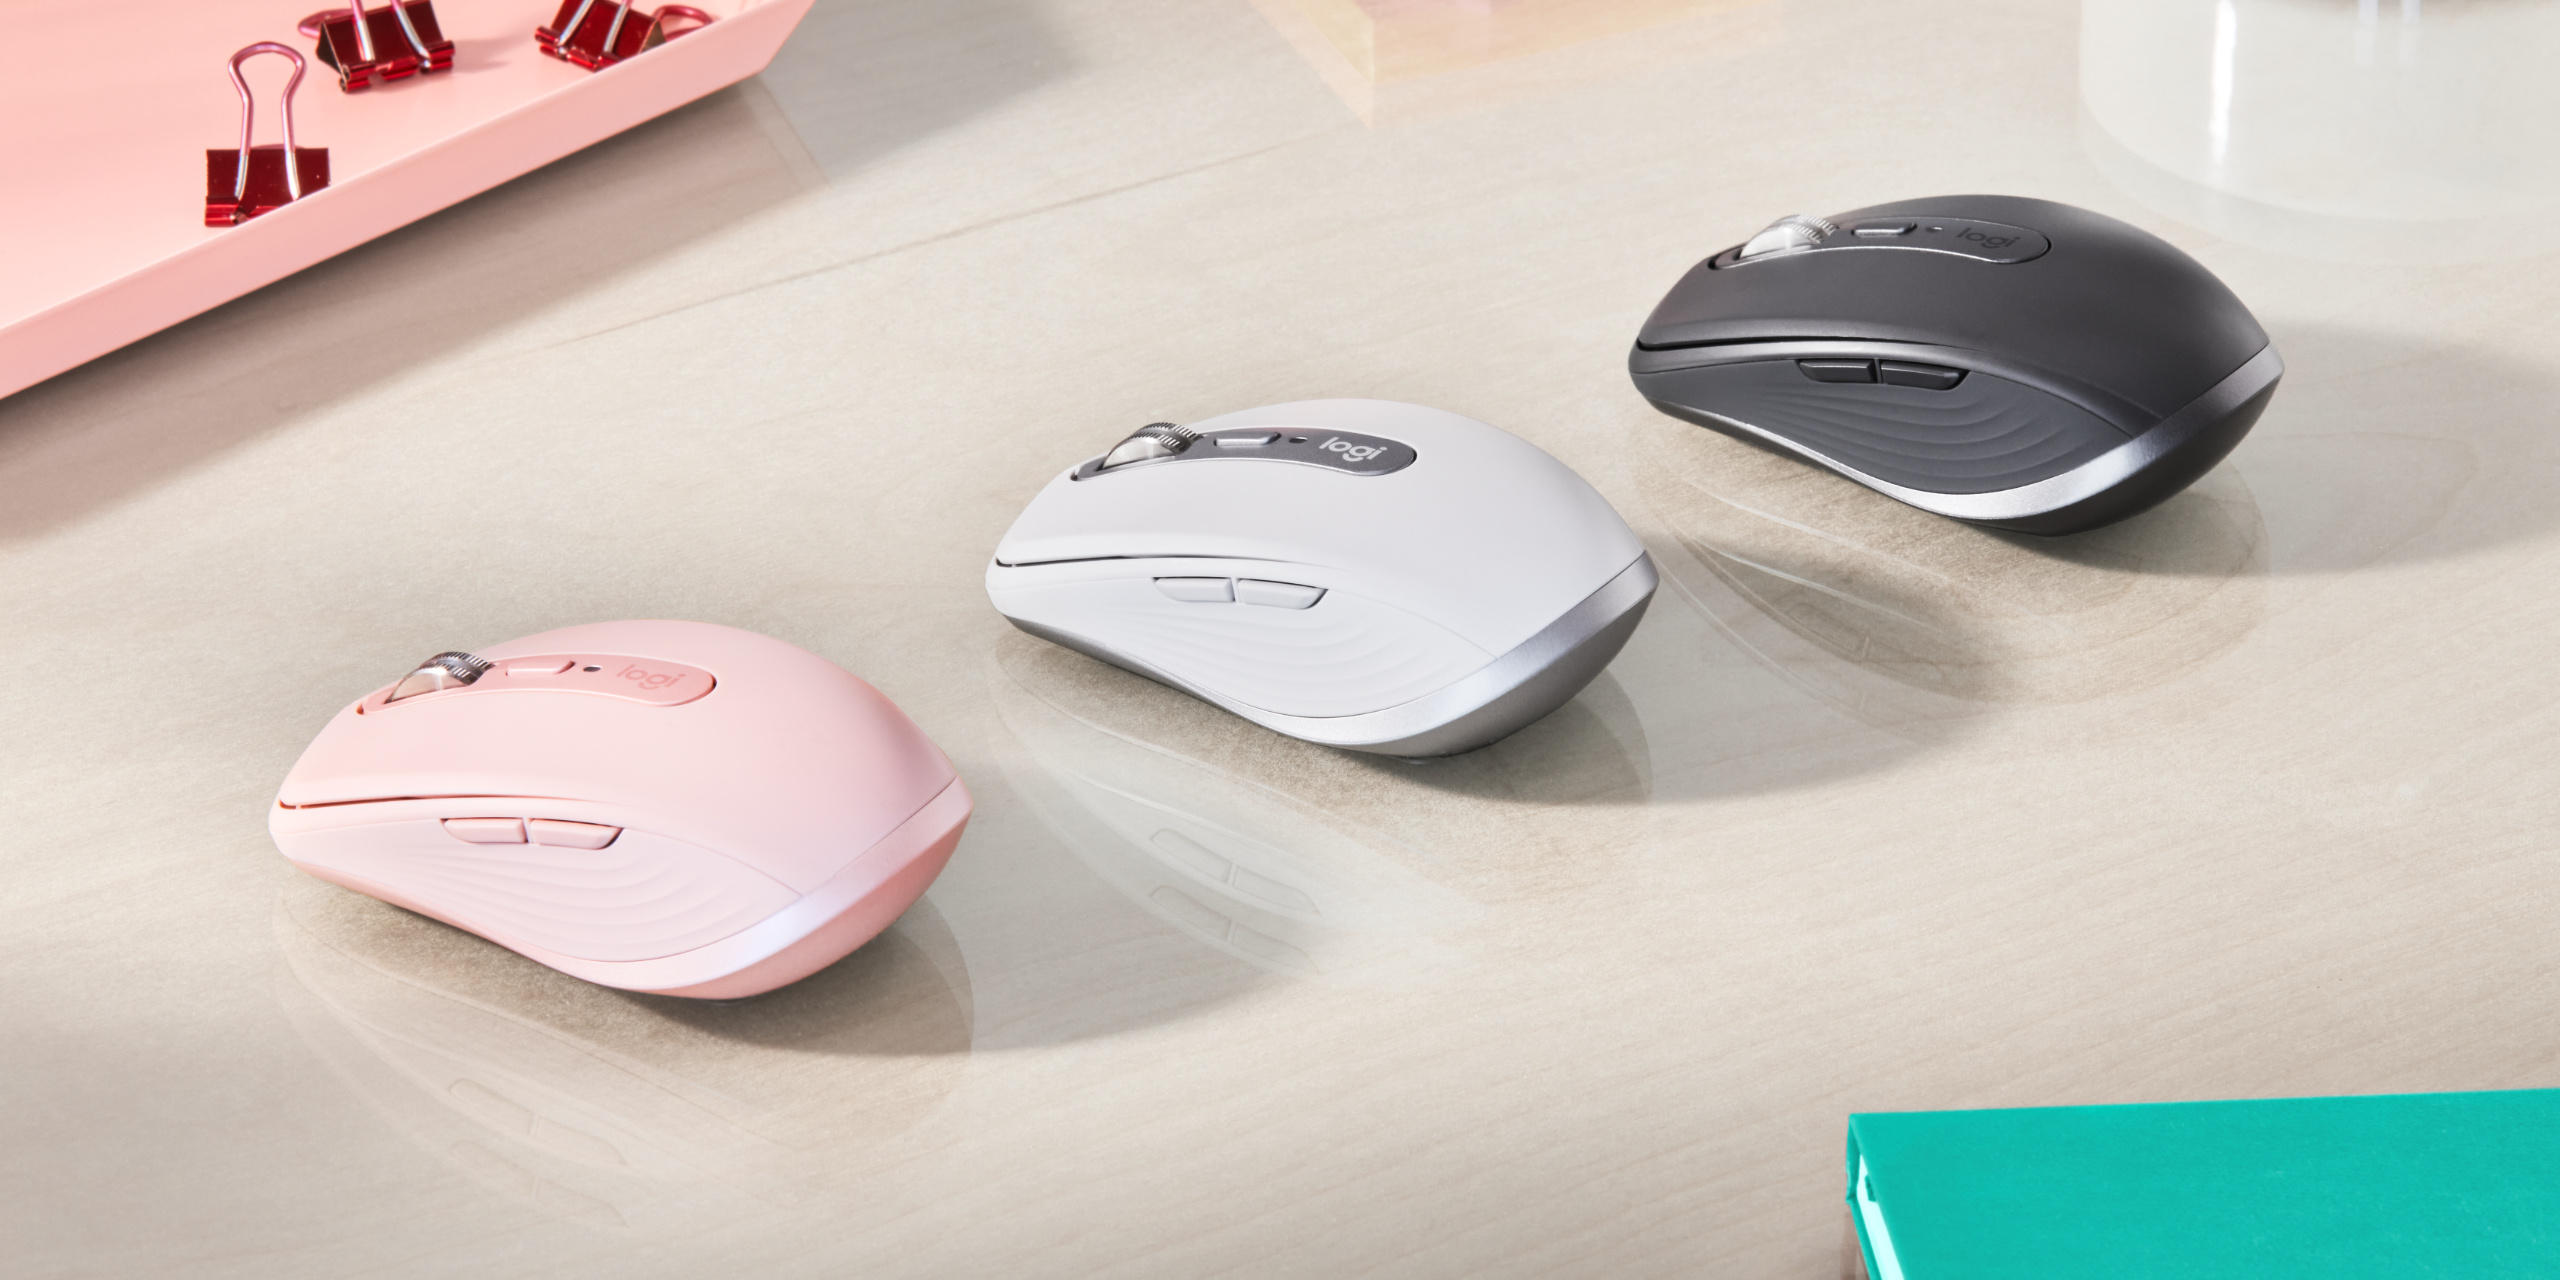 Logitech's new MX Anywhere 3 mouse for Mac looks like a great WFH companion